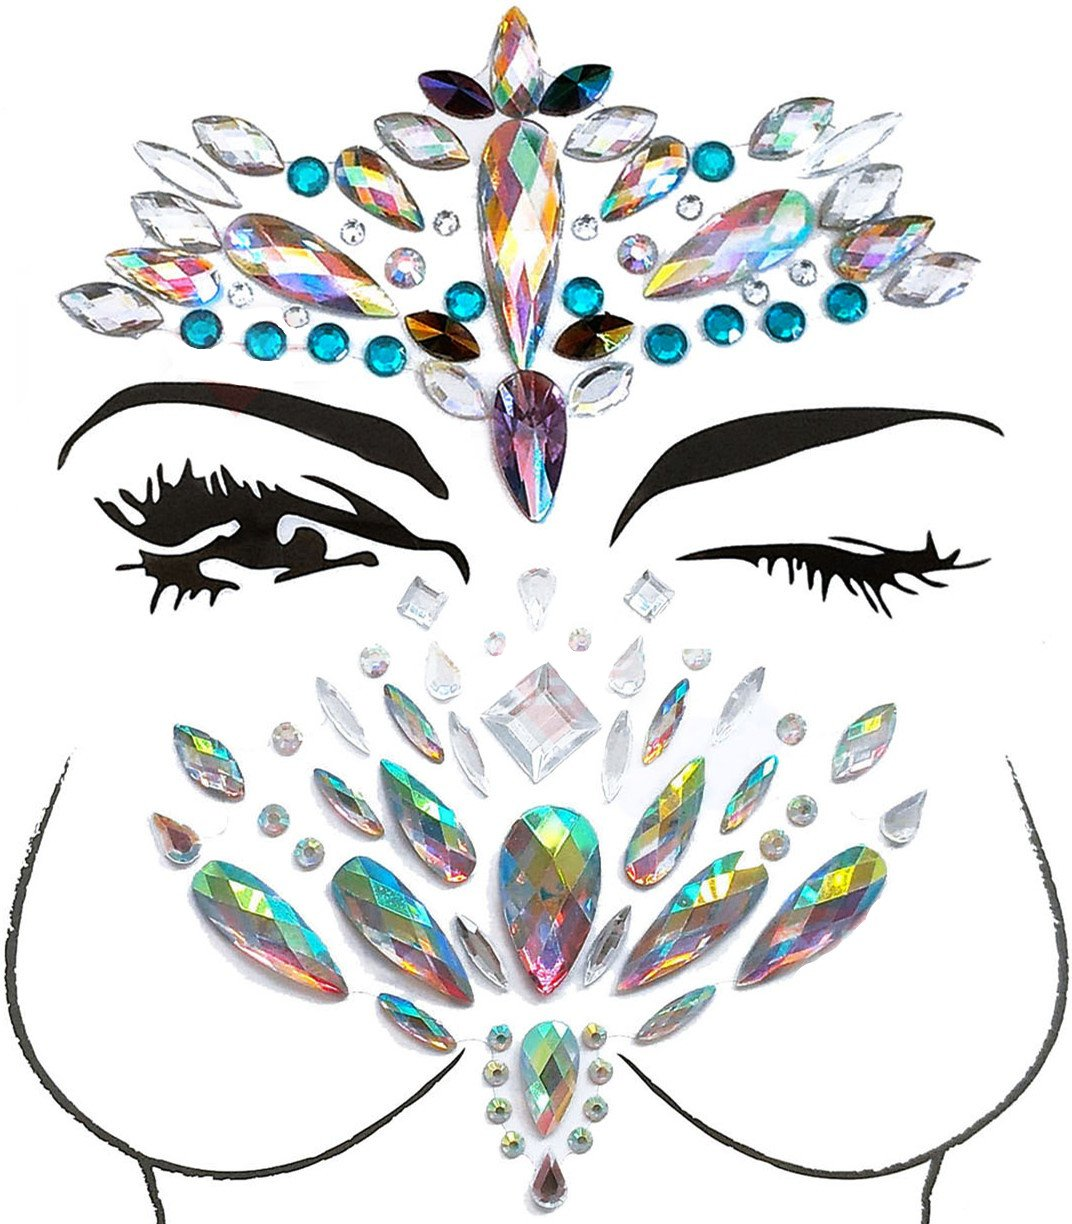 MineSign 8 Pack Face Jewels Festival Tattoo Set Face Gems Glitter Bindi Costume Makeup Rhinestone Eyes Body Rave Pasties for Party Roller (Mermaid Face Chest Kit) by MineSign (Image #6)